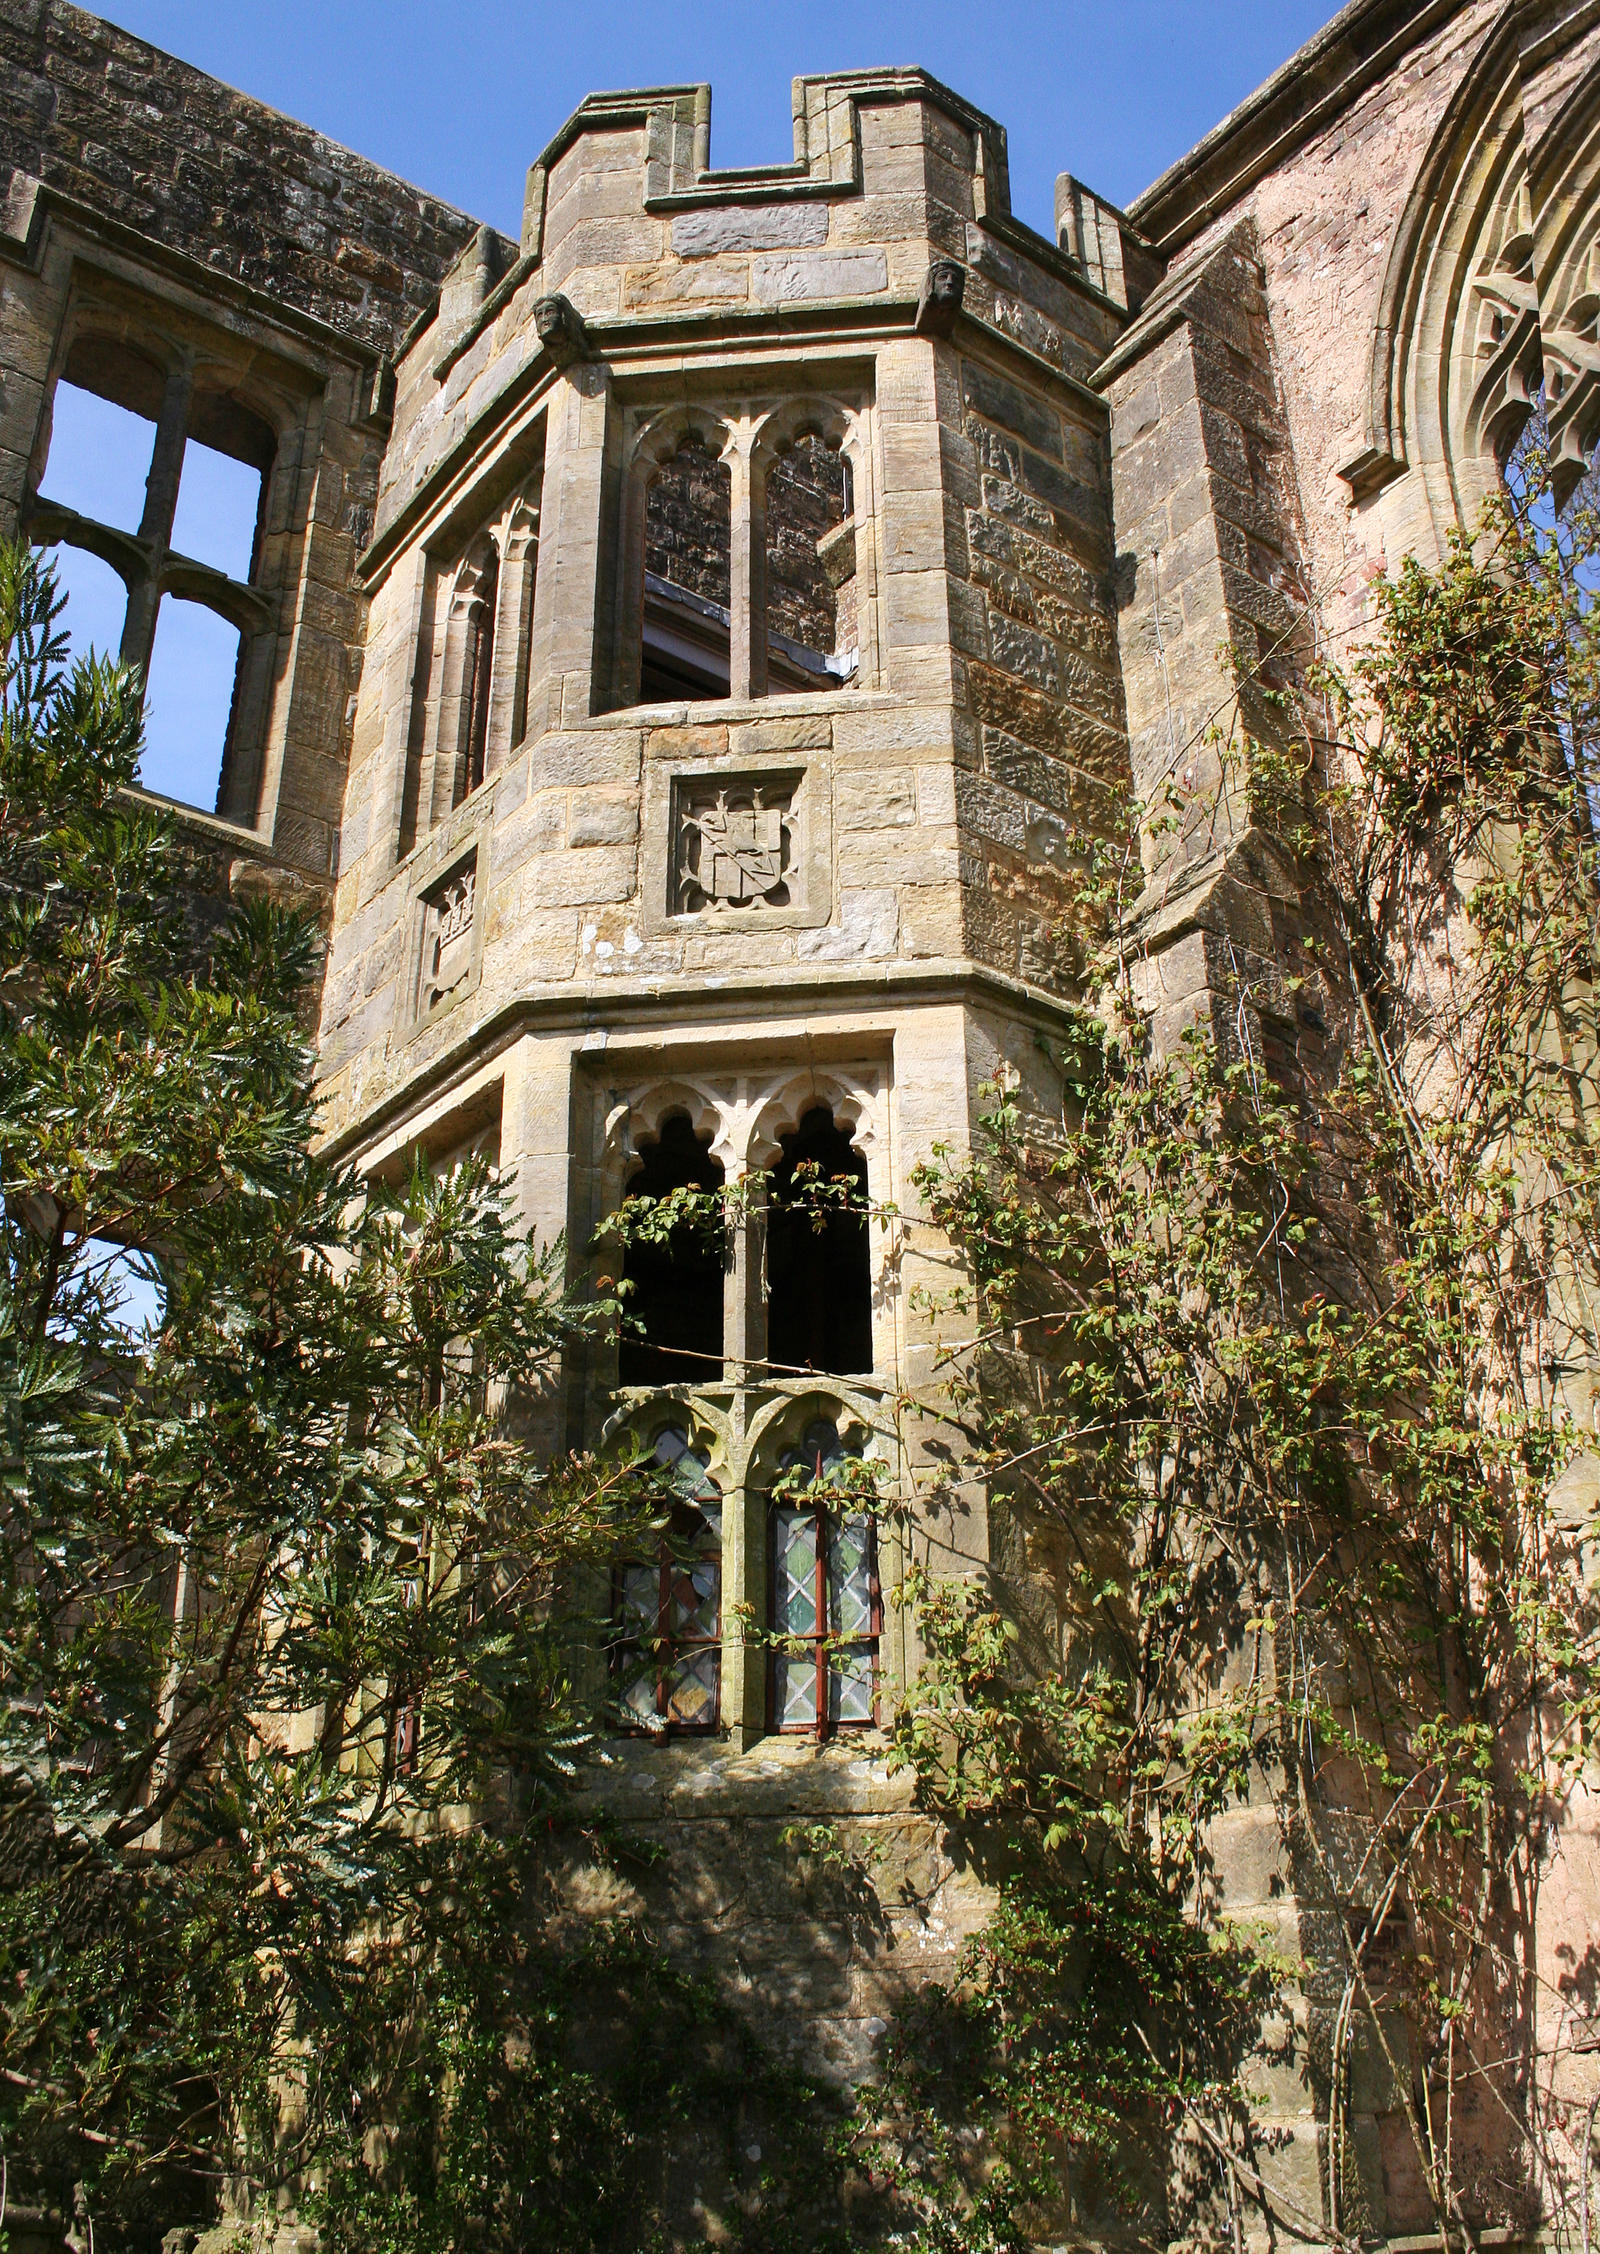 Nymans 11 - Stock by GothicBohemianStock